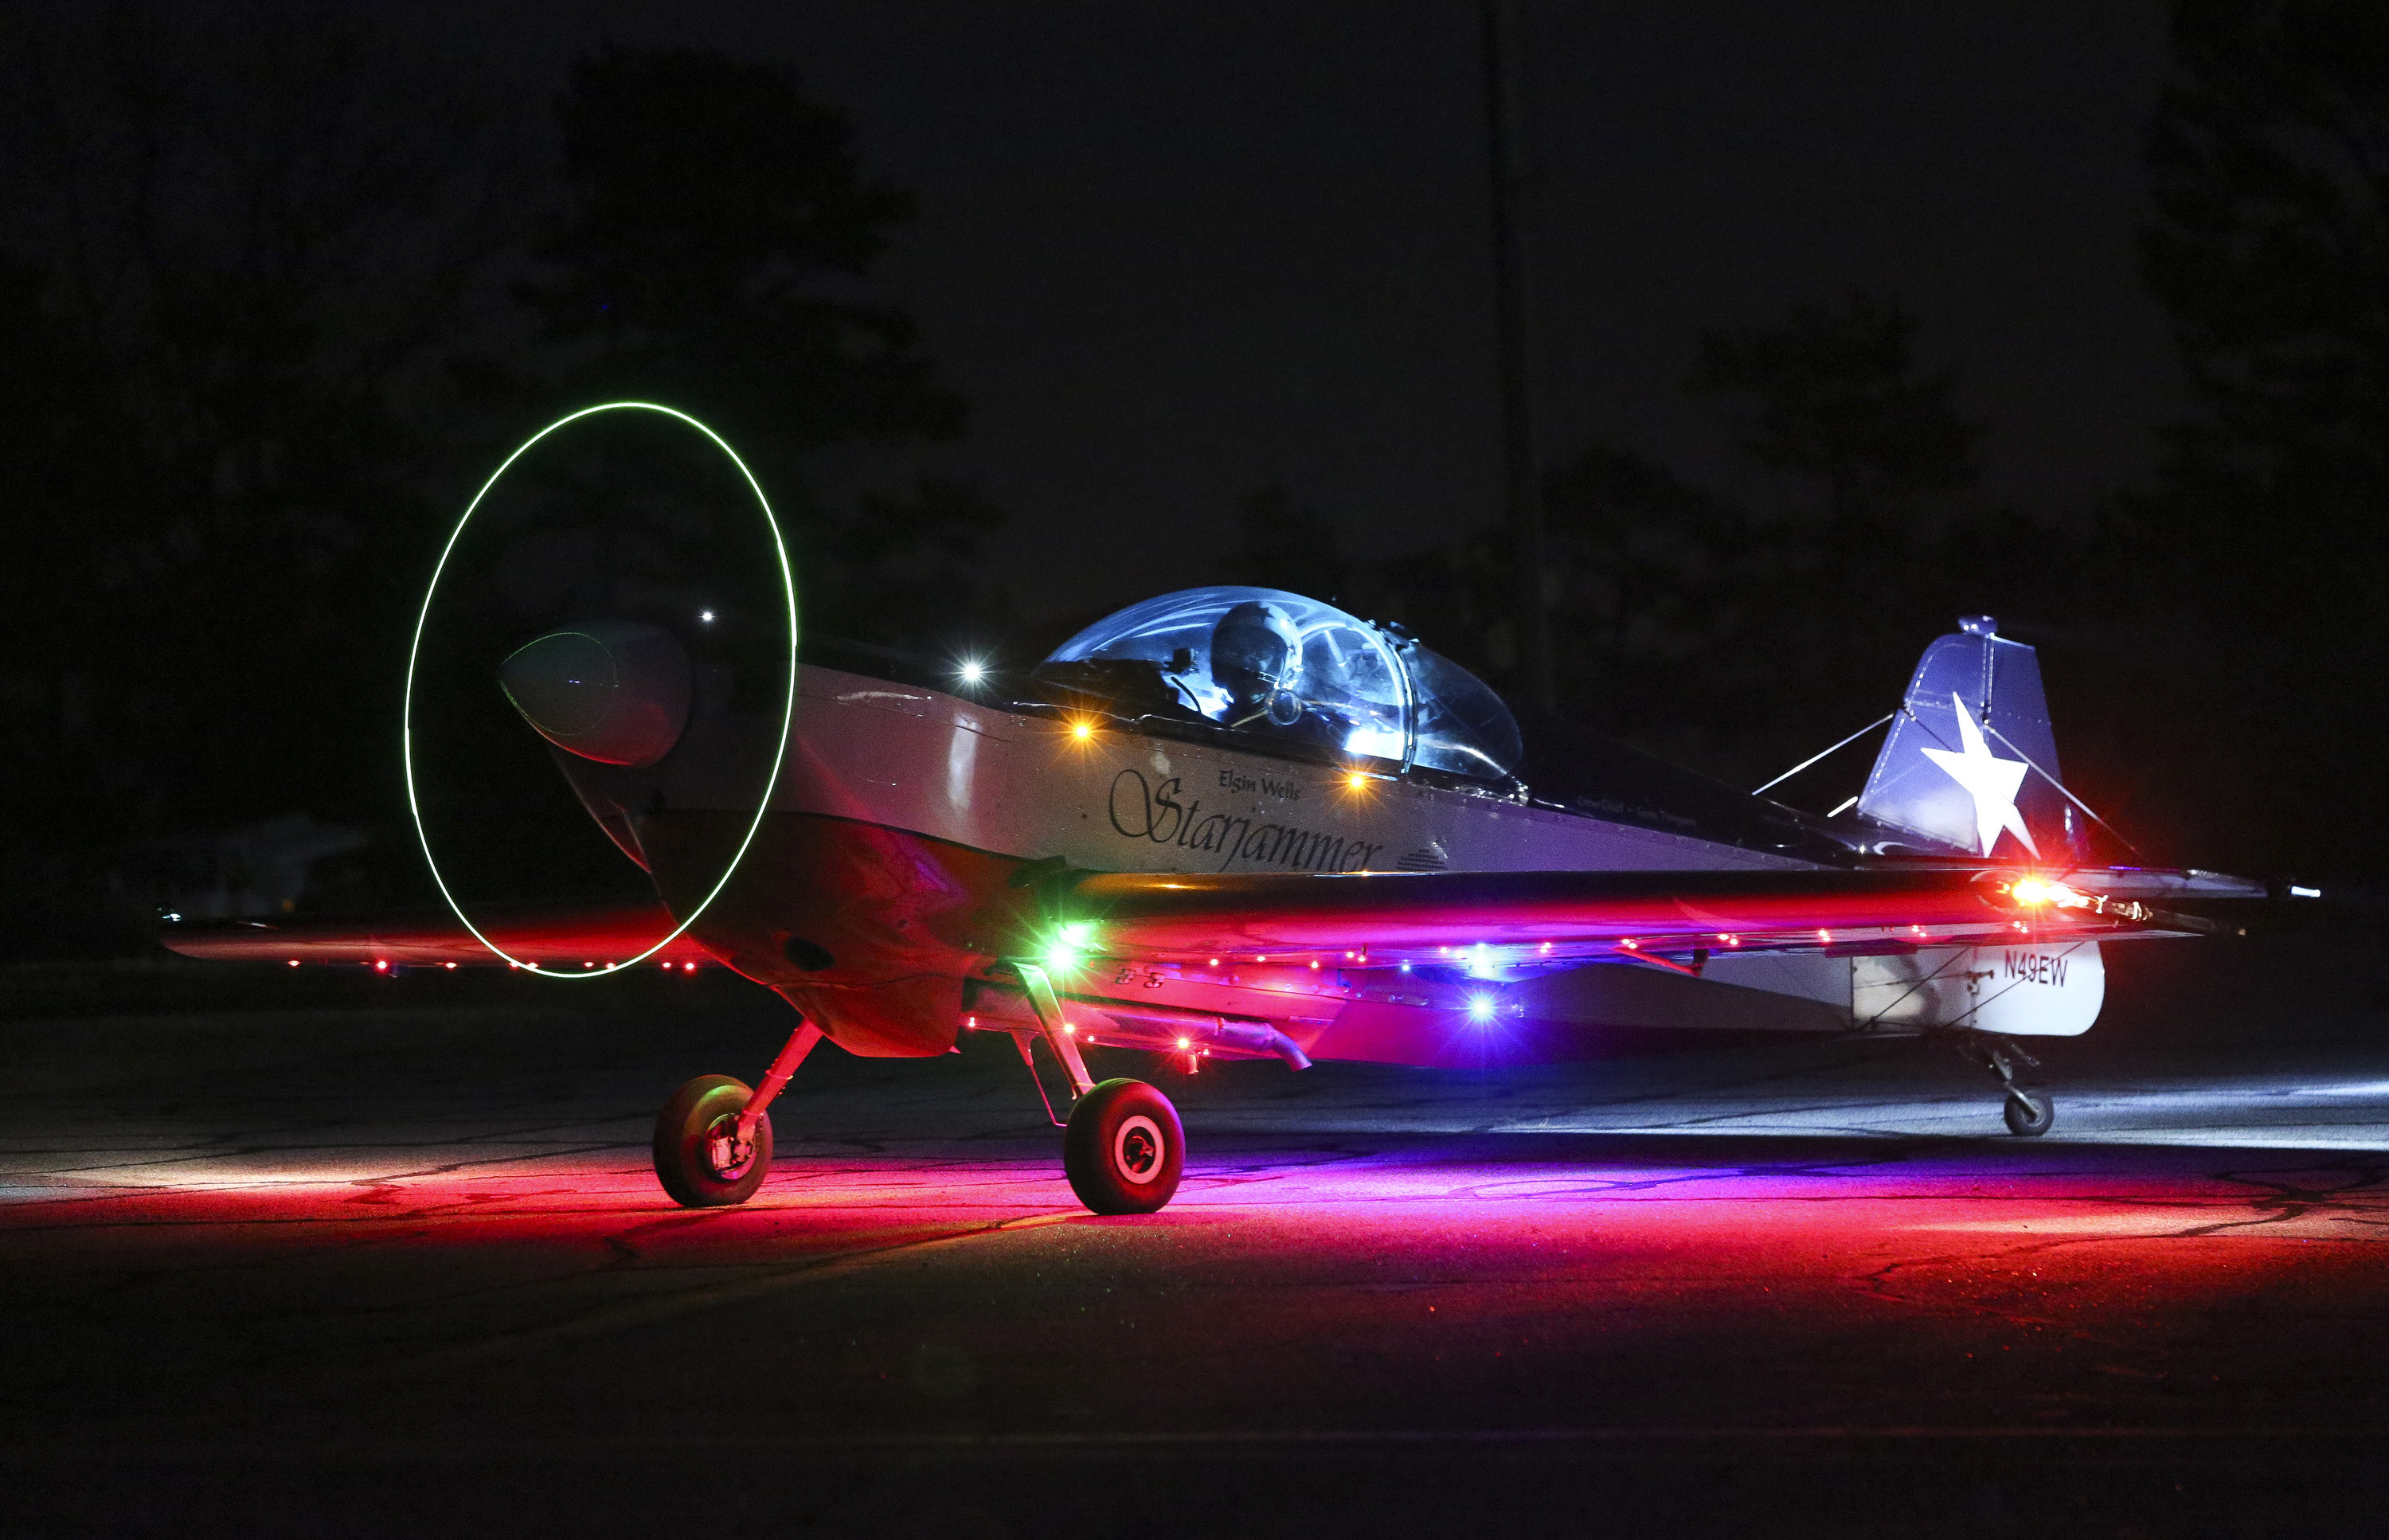 Elgin Wells performs a nighttime demonstration in his  aerobatic plane 'Starjammer' at Cherokee County Airport in this 2014 file photo in Ballground, Georgia. The One Design kit airplane is equipped with hundreds of LEDs in order to provide the glow for his night performances. Photo courtesy of the Gwinnett Daily Post.